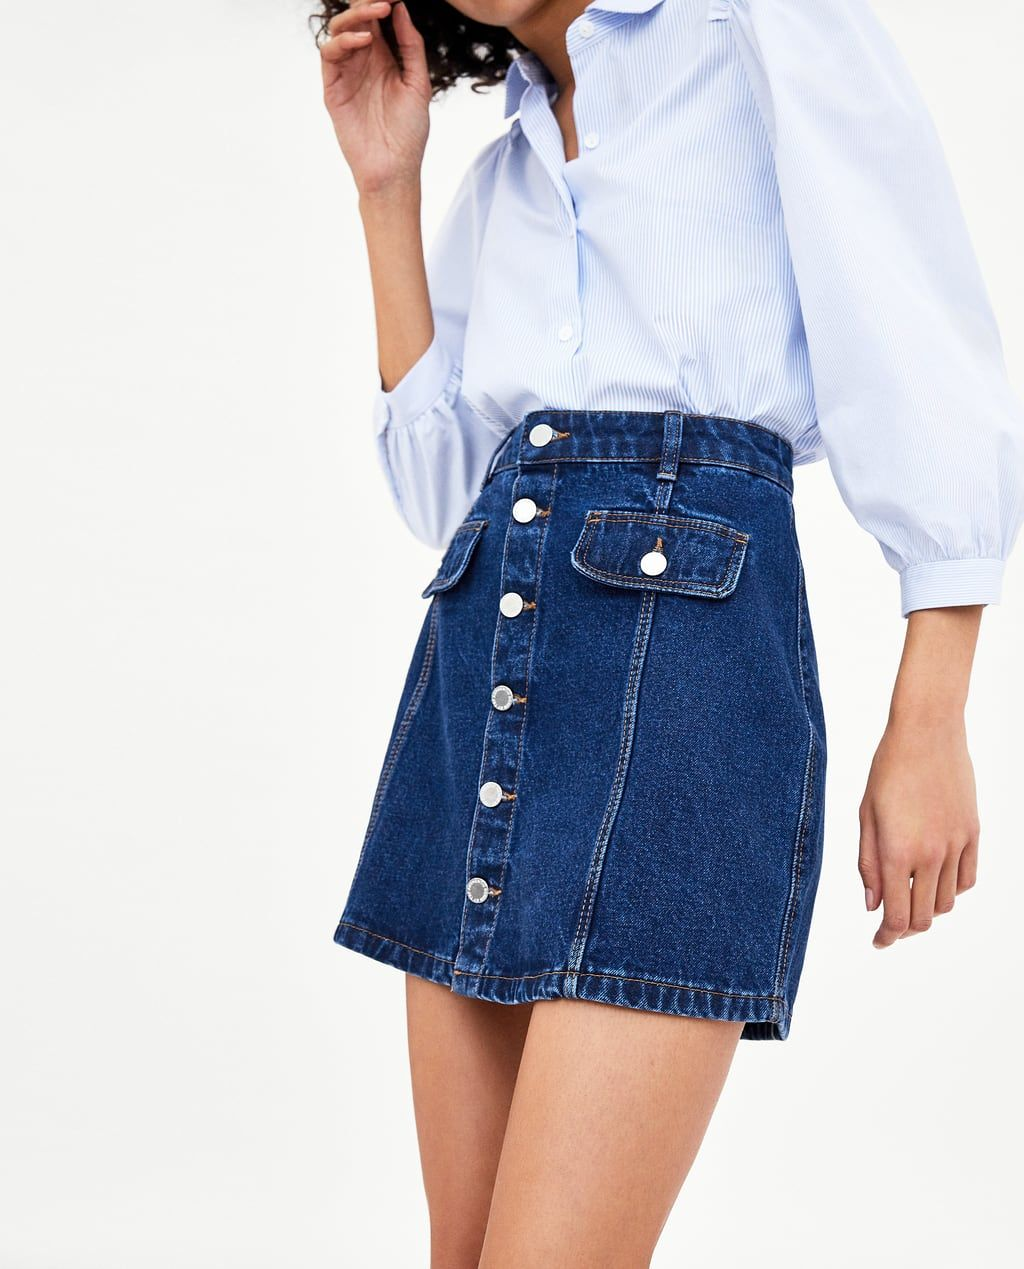 2be4898a6d142b Image 3 of HIGH RISE MINI SKIRT WITH BUTTONS from Zara | Fashion ...